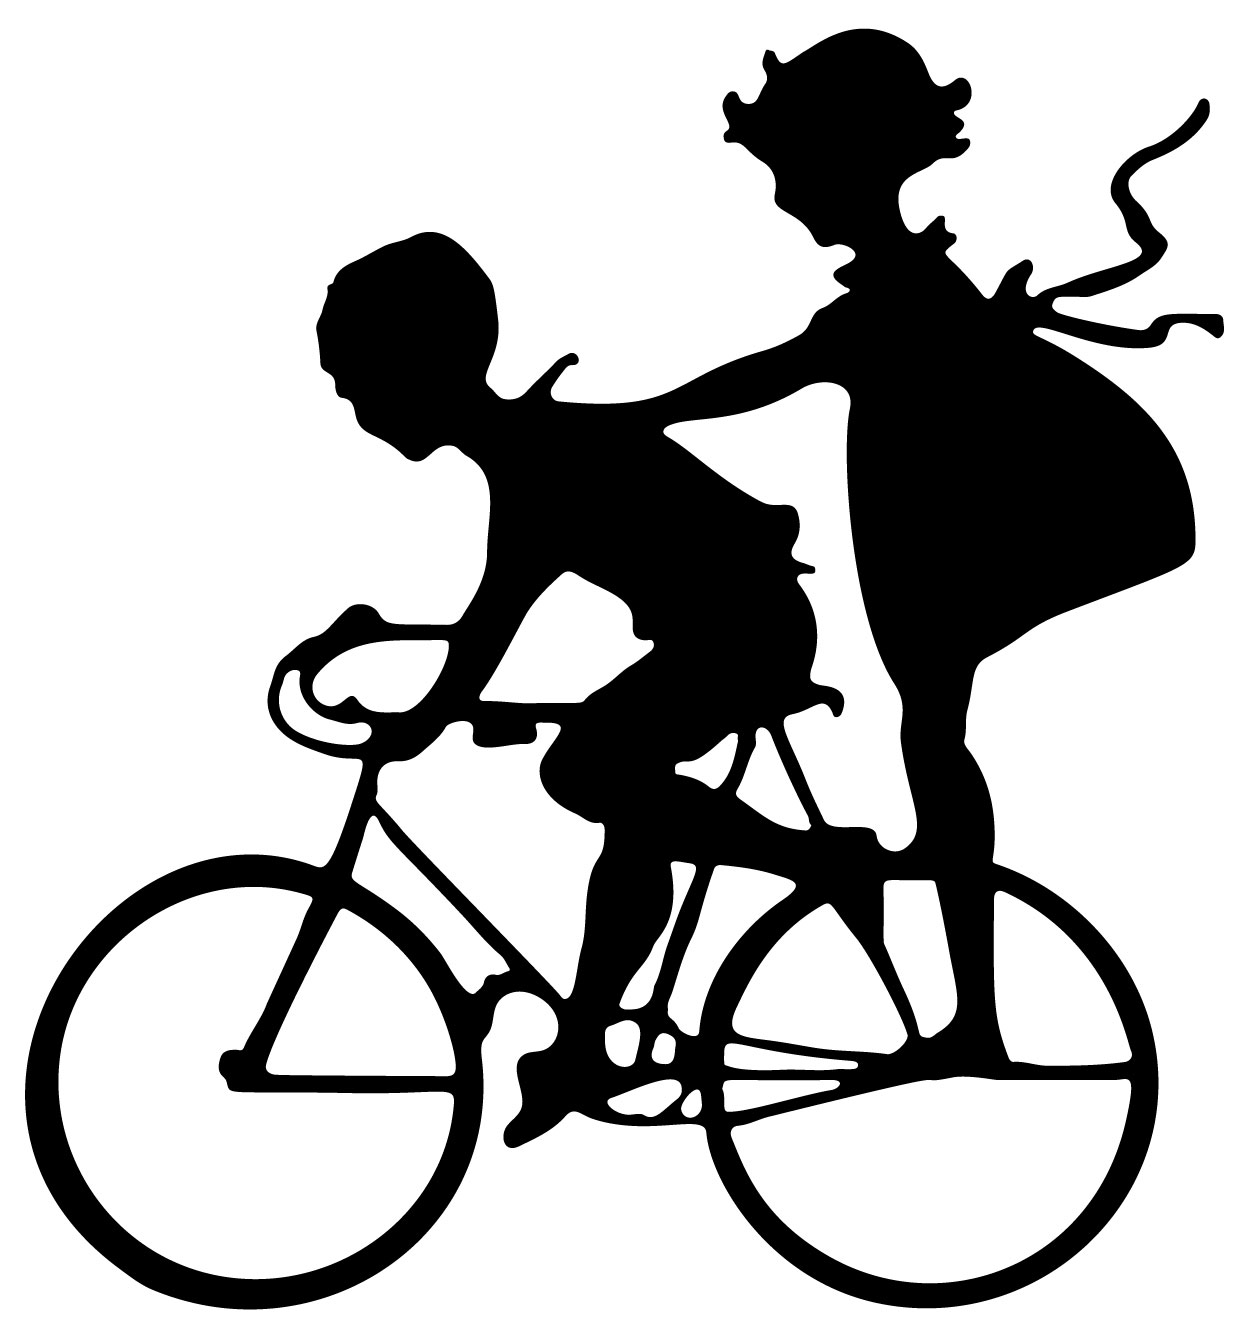 Vintage Brother and Sister Bicycle Silhouette